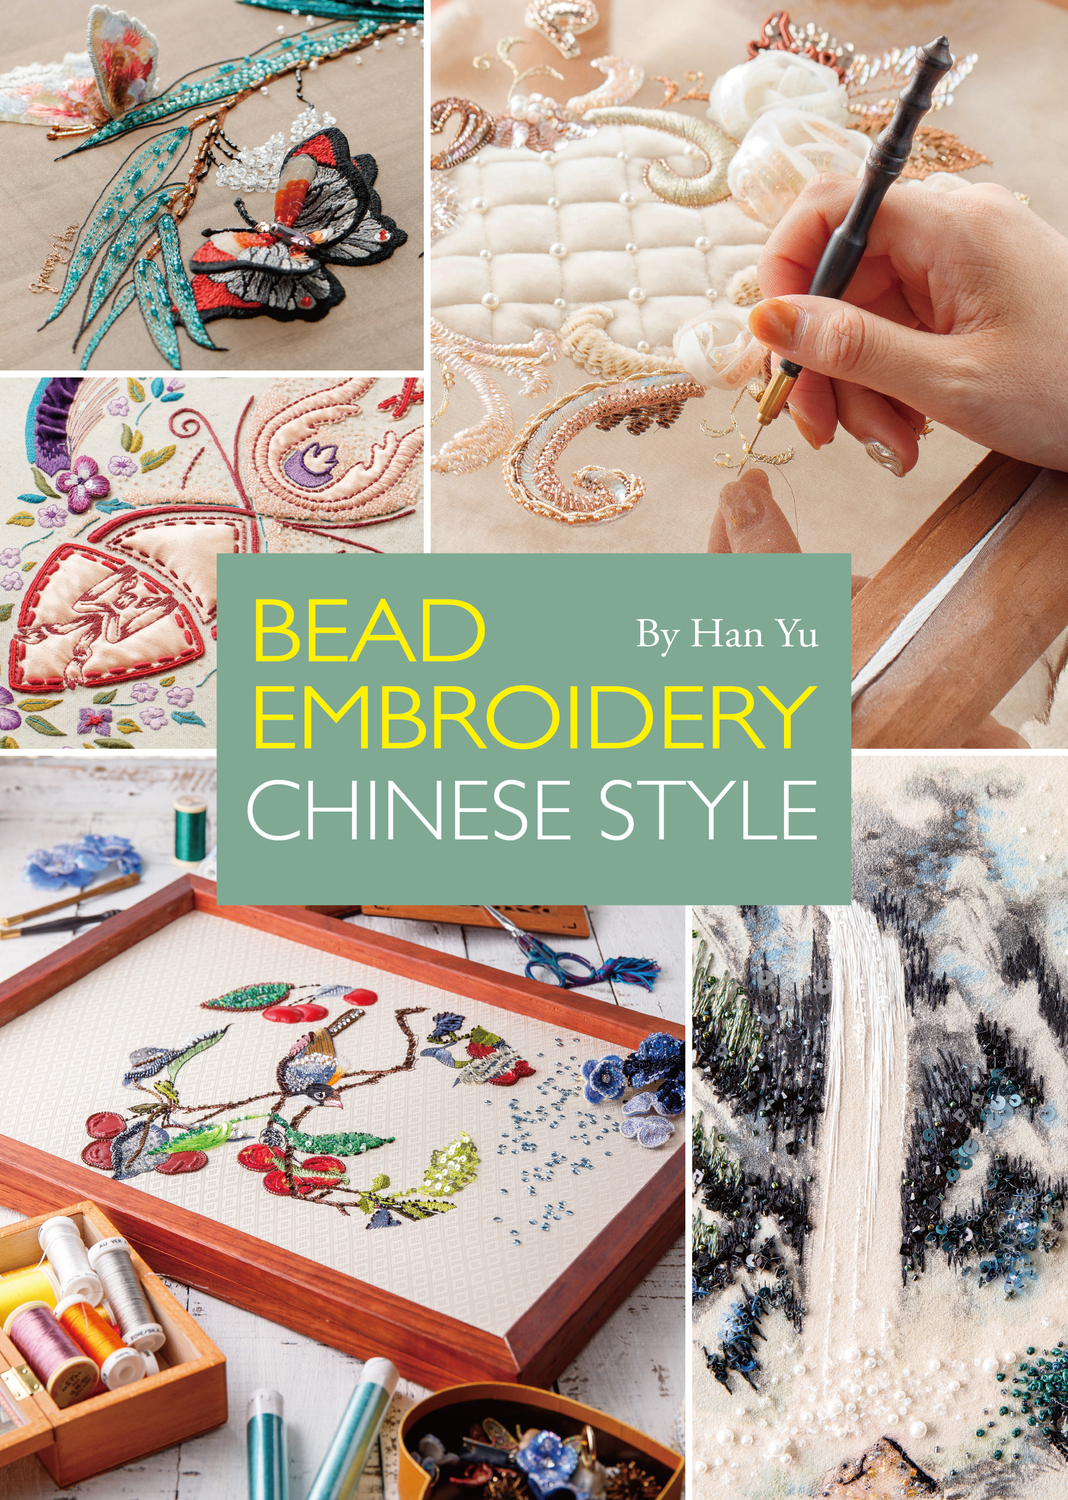 Bead Embroidery Chinese Style